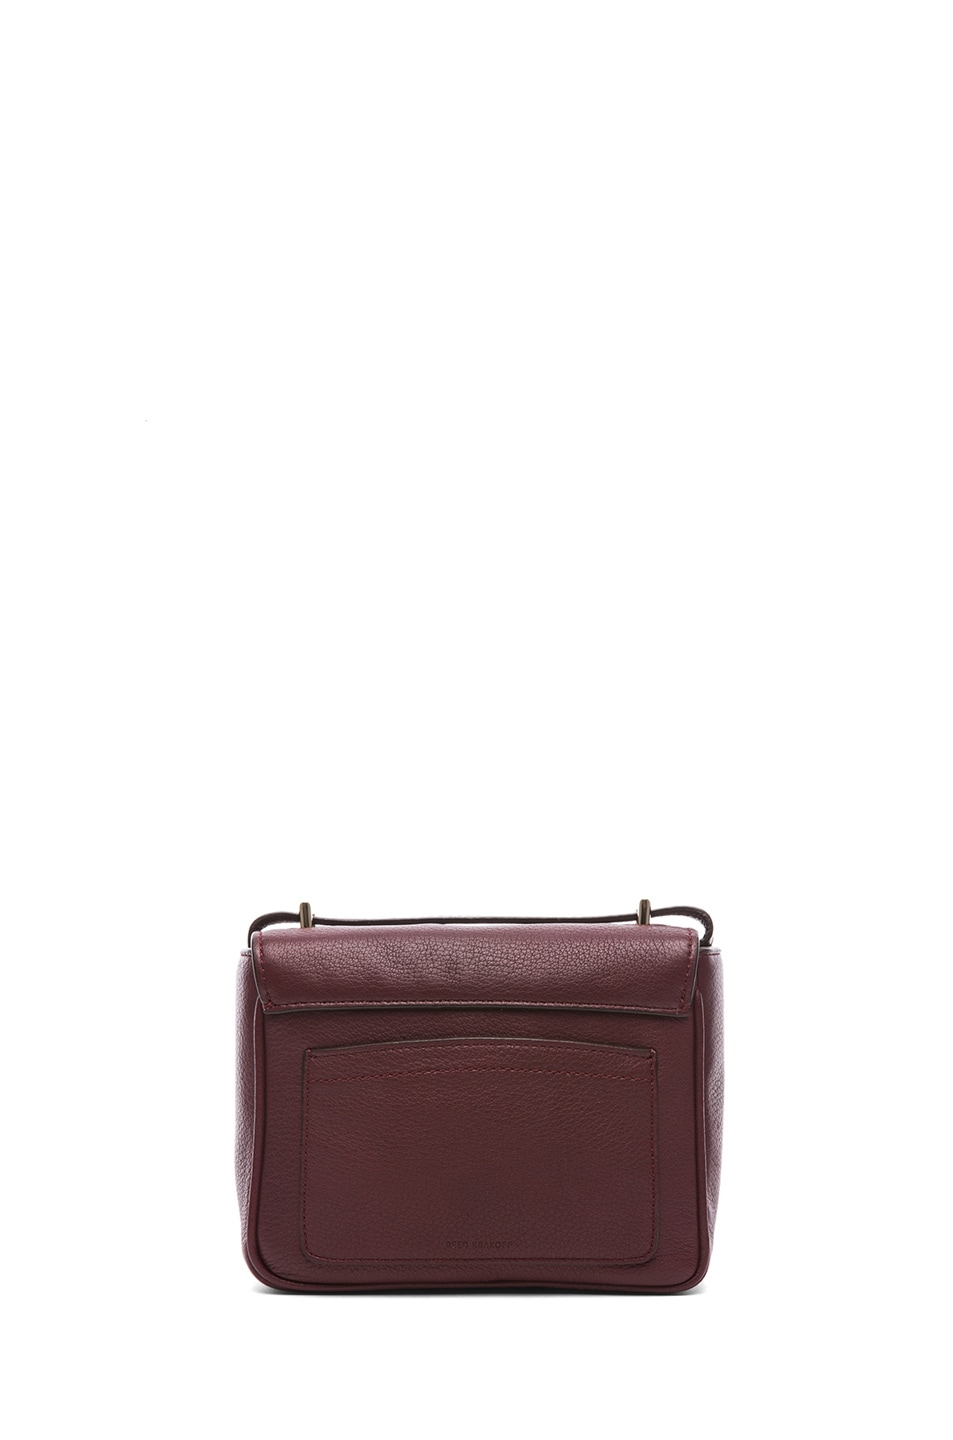 Image 2 of Reed Krakoff Mini Standard Shoulder Bag in Cordovan